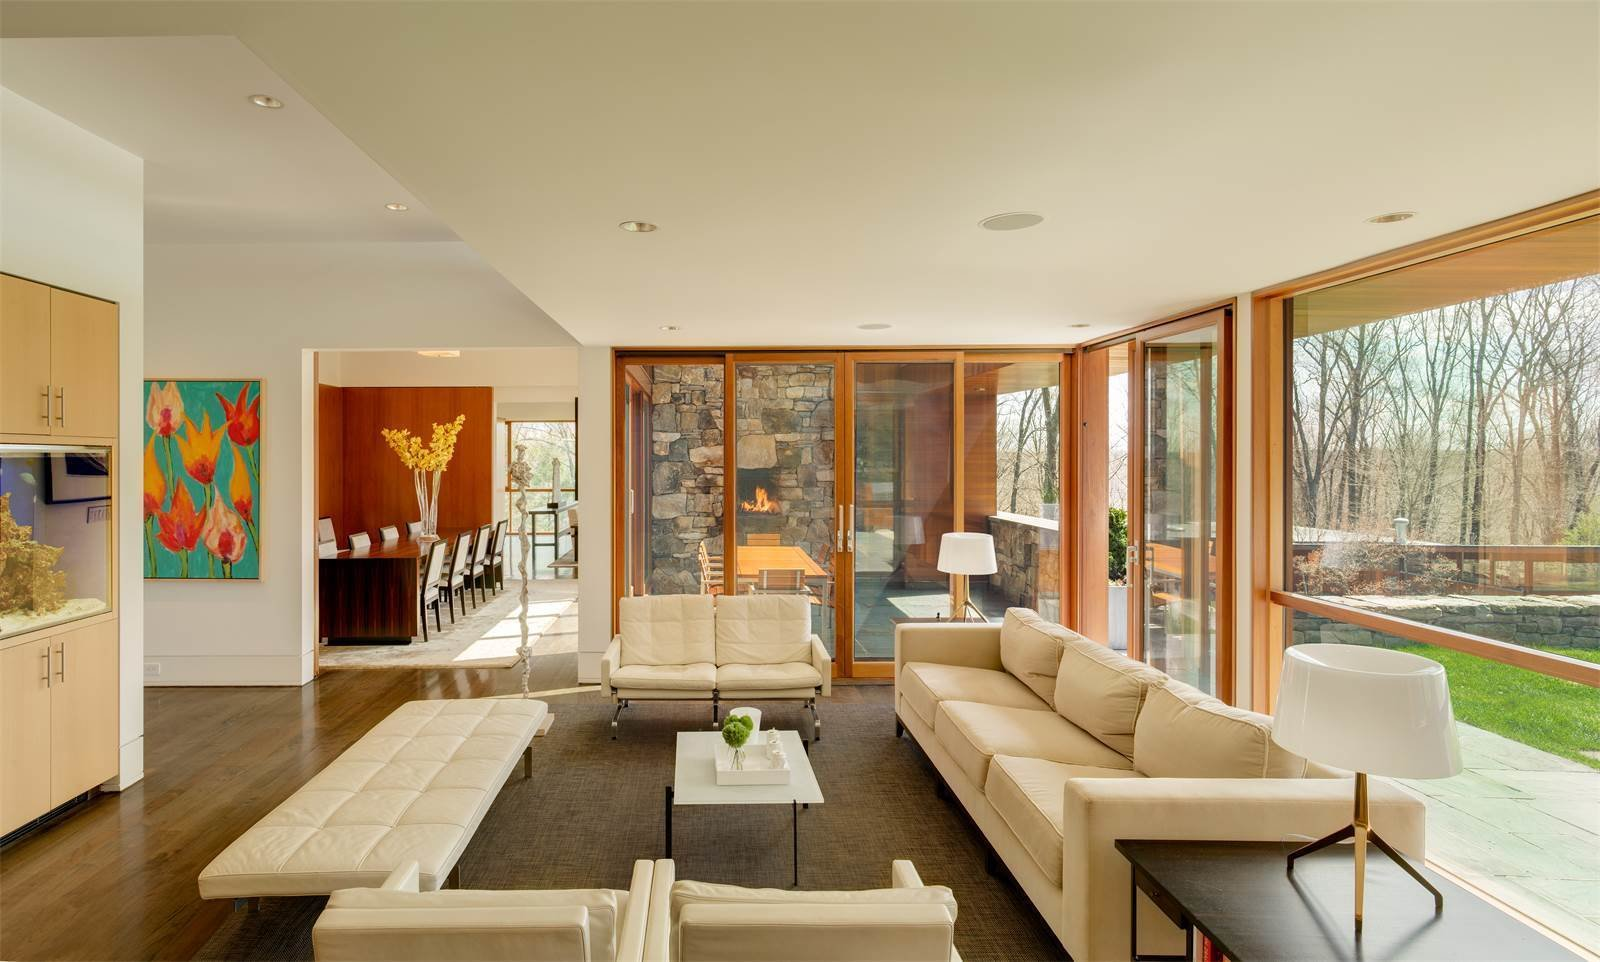 Photo 2 of 9 in Get Smart: Tech-Forward Homes Around the Globe